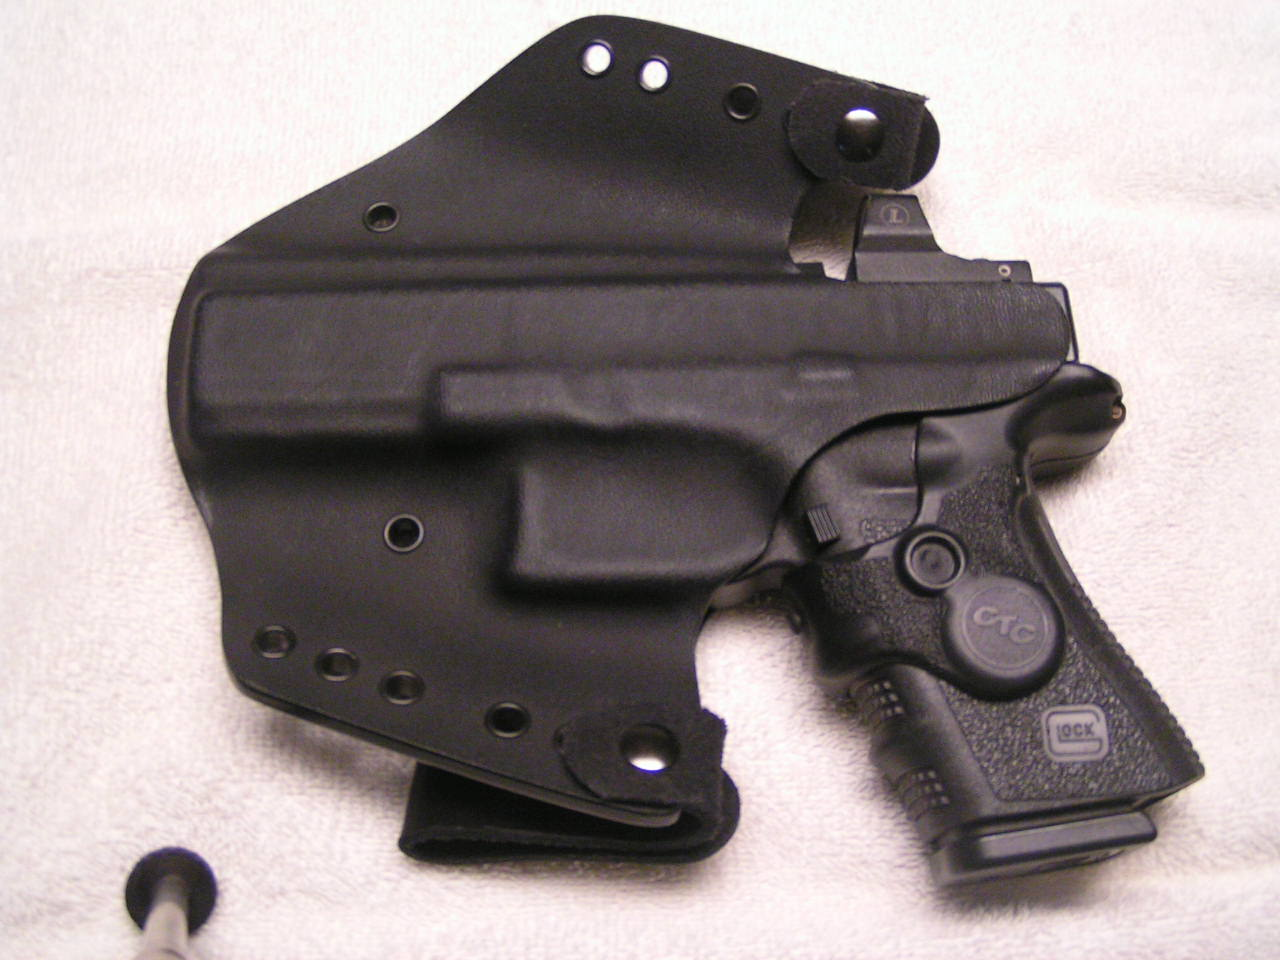 The Perfect Kydex IWB Holster-midworld-17-holster-001.jpg